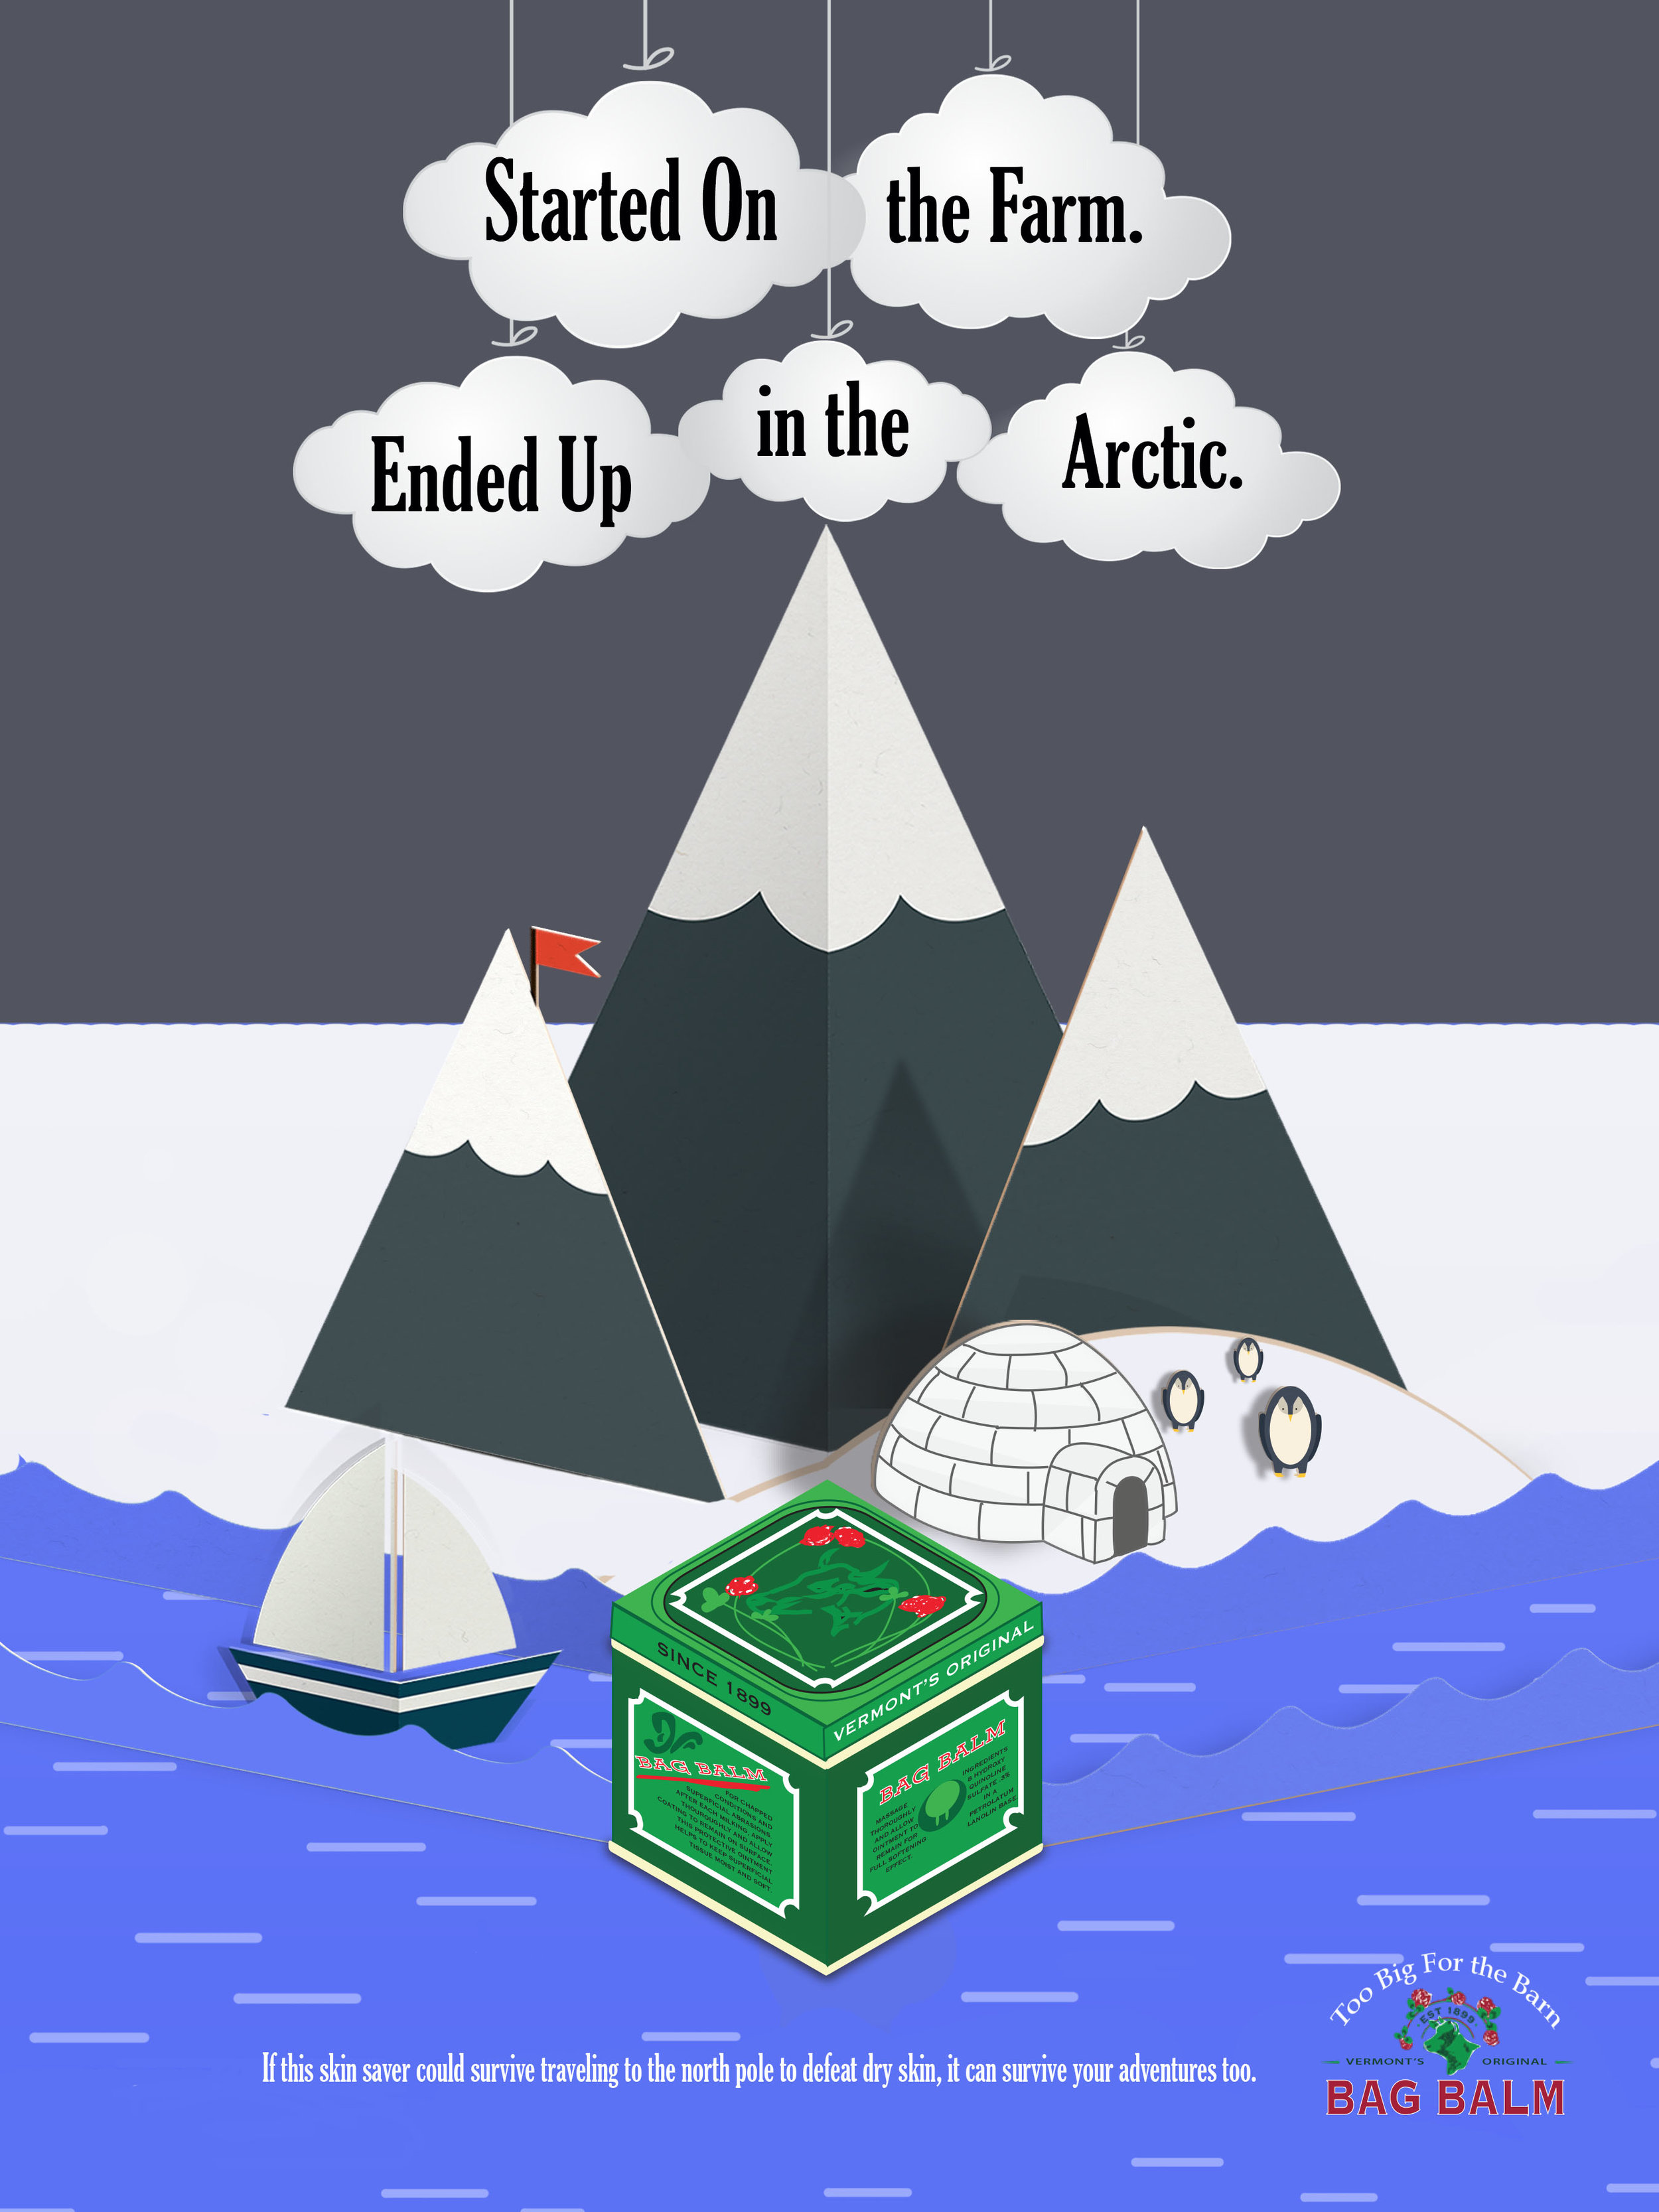 Body Copy: If this skin saver could survive traveling to the North Pole to defeat dry skin, it can survive your adventures too.